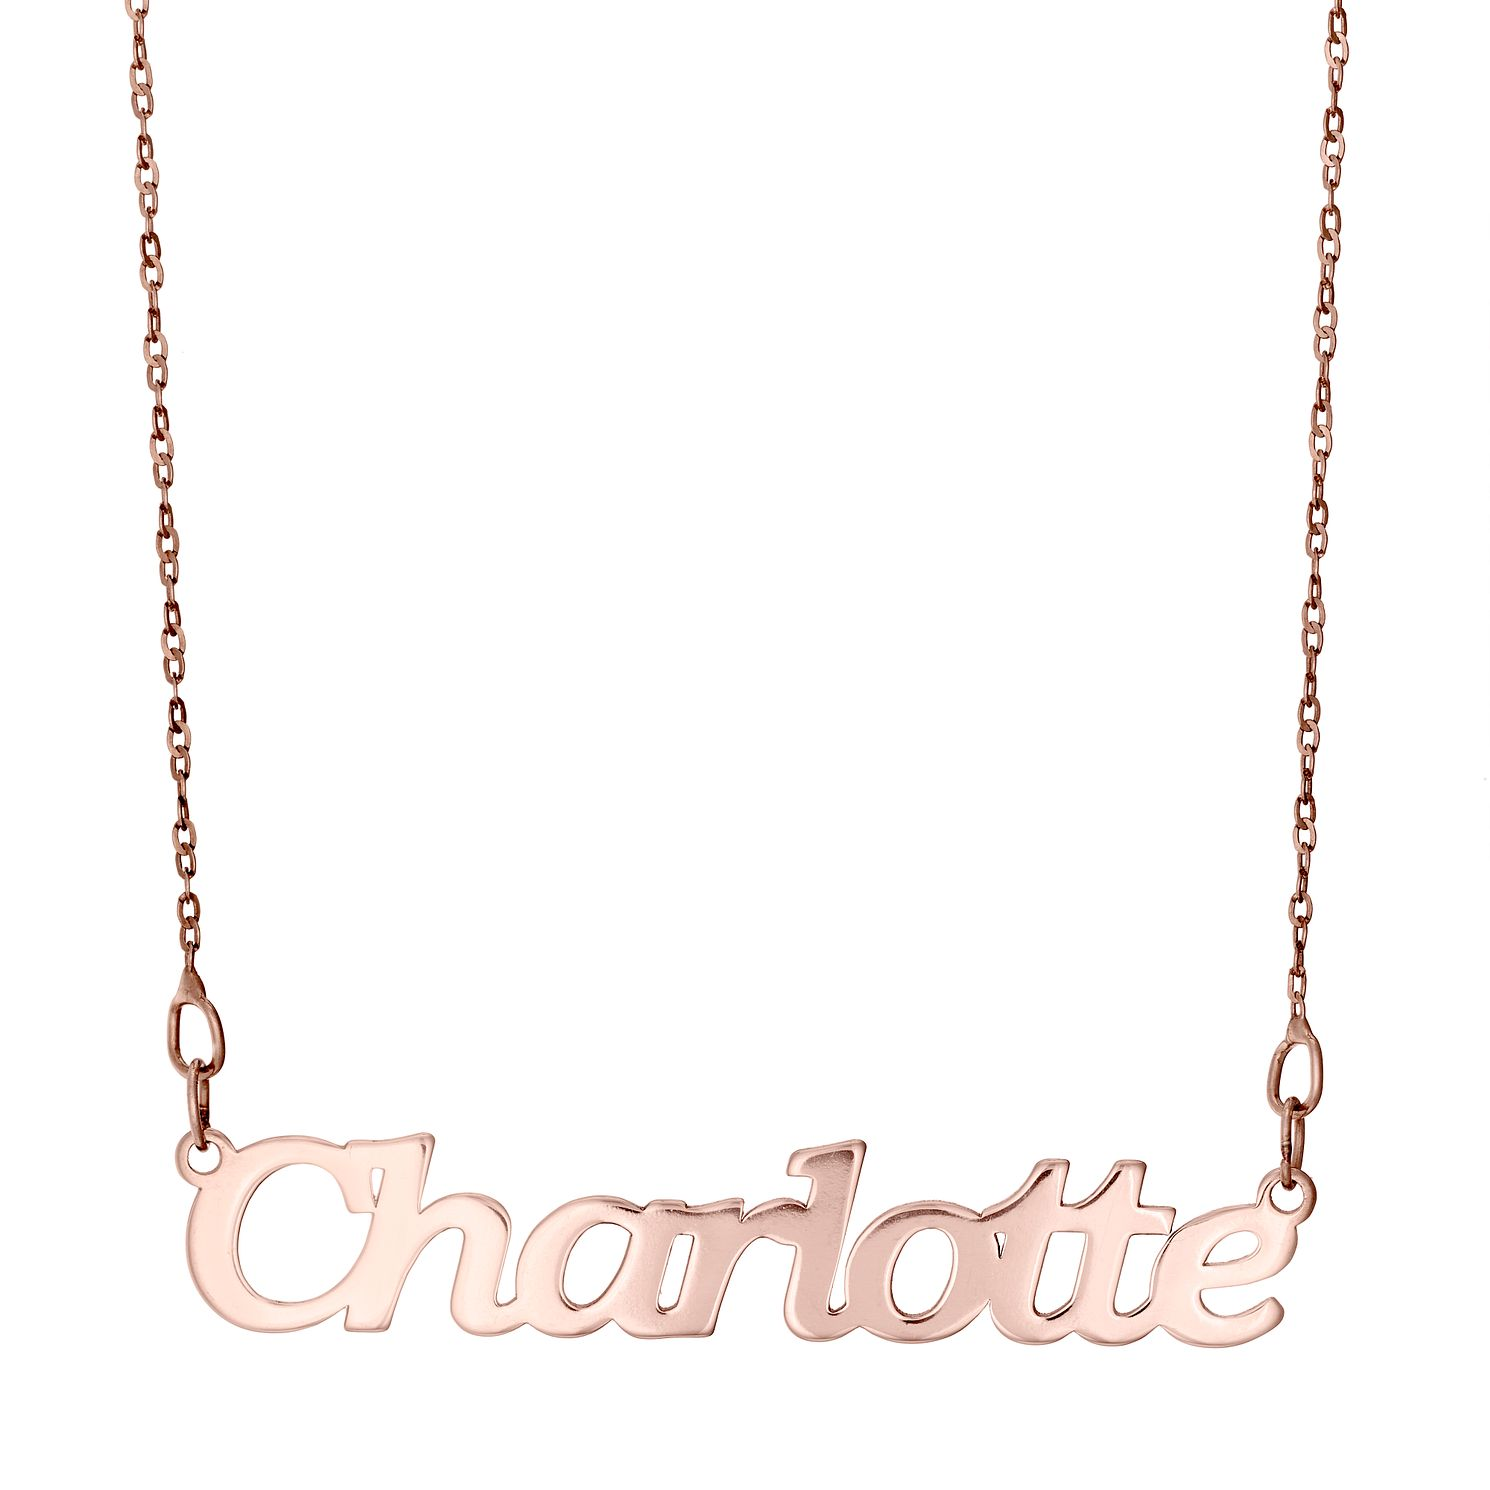 9ct Rose Gold 'Charlotte' Nameplate Necklace - Product number 4489608